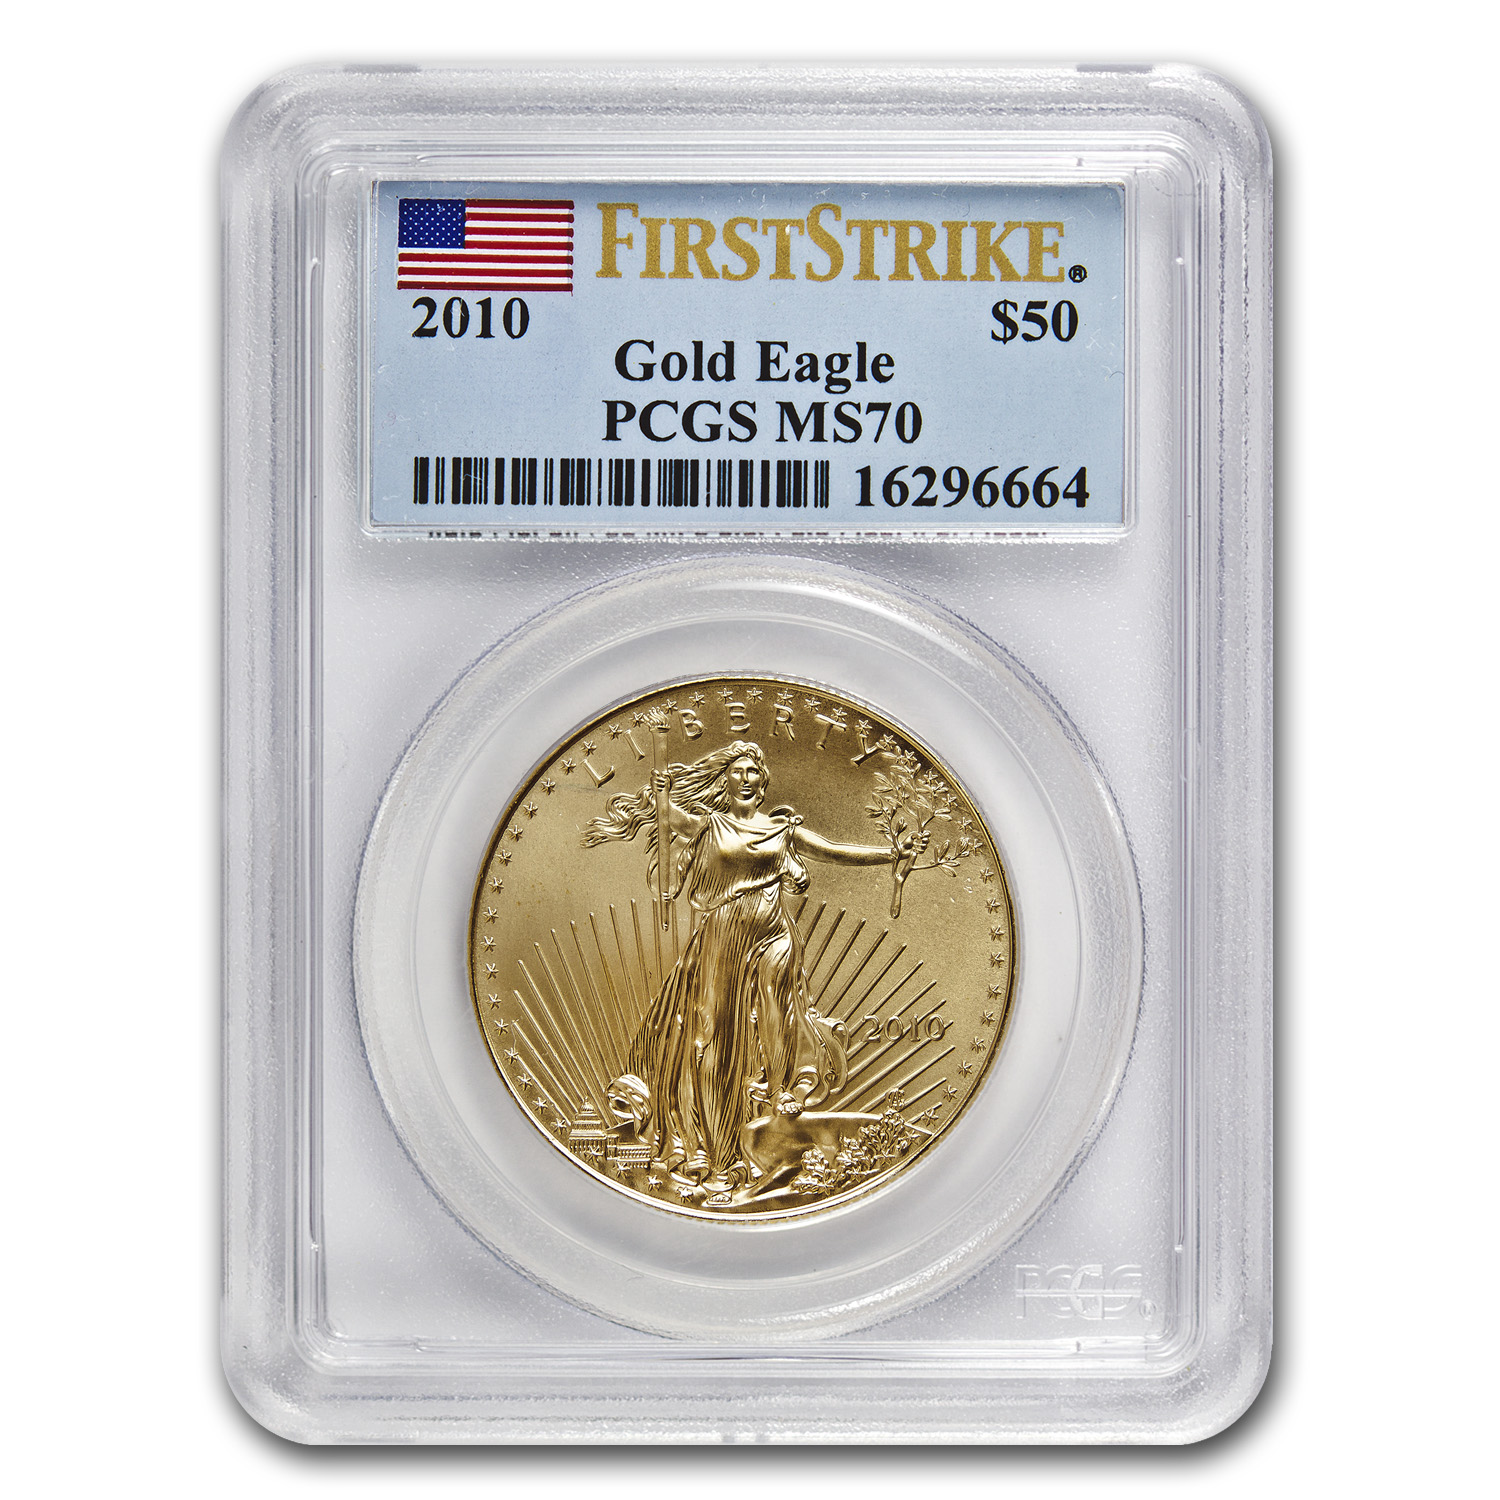 2010 1 oz Gold American Eagle MS-70 PCGS (FS)